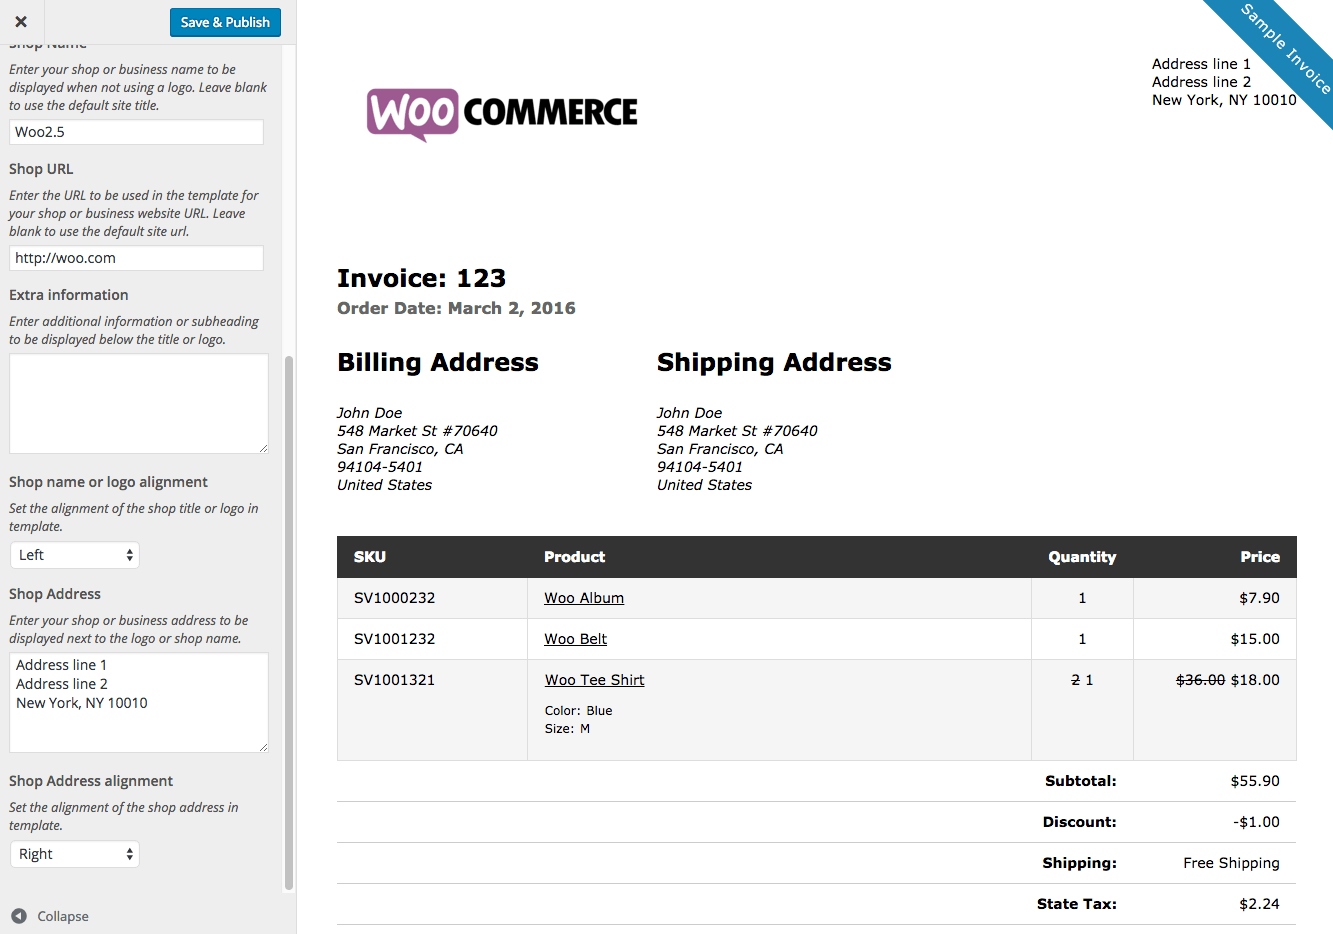 Hucareus  Terrific Woocommerce Print Invoices Amp Packing Lists  Woocommerce Docs With Heavenly Woocommerce Print Invoices  Packing Lists Customizer With Beautiful Pos Receipt Printer Also Receipt Calculator In Addition Walmart Receipt Code Lookup And Return Receipt Email As Well As Cash Receipt Template Word Additionally Receipts Online From Docswoocommercecom With Hucareus  Heavenly Woocommerce Print Invoices Amp Packing Lists  Woocommerce Docs With Beautiful Woocommerce Print Invoices  Packing Lists Customizer And Terrific Pos Receipt Printer Also Receipt Calculator In Addition Walmart Receipt Code Lookup From Docswoocommercecom